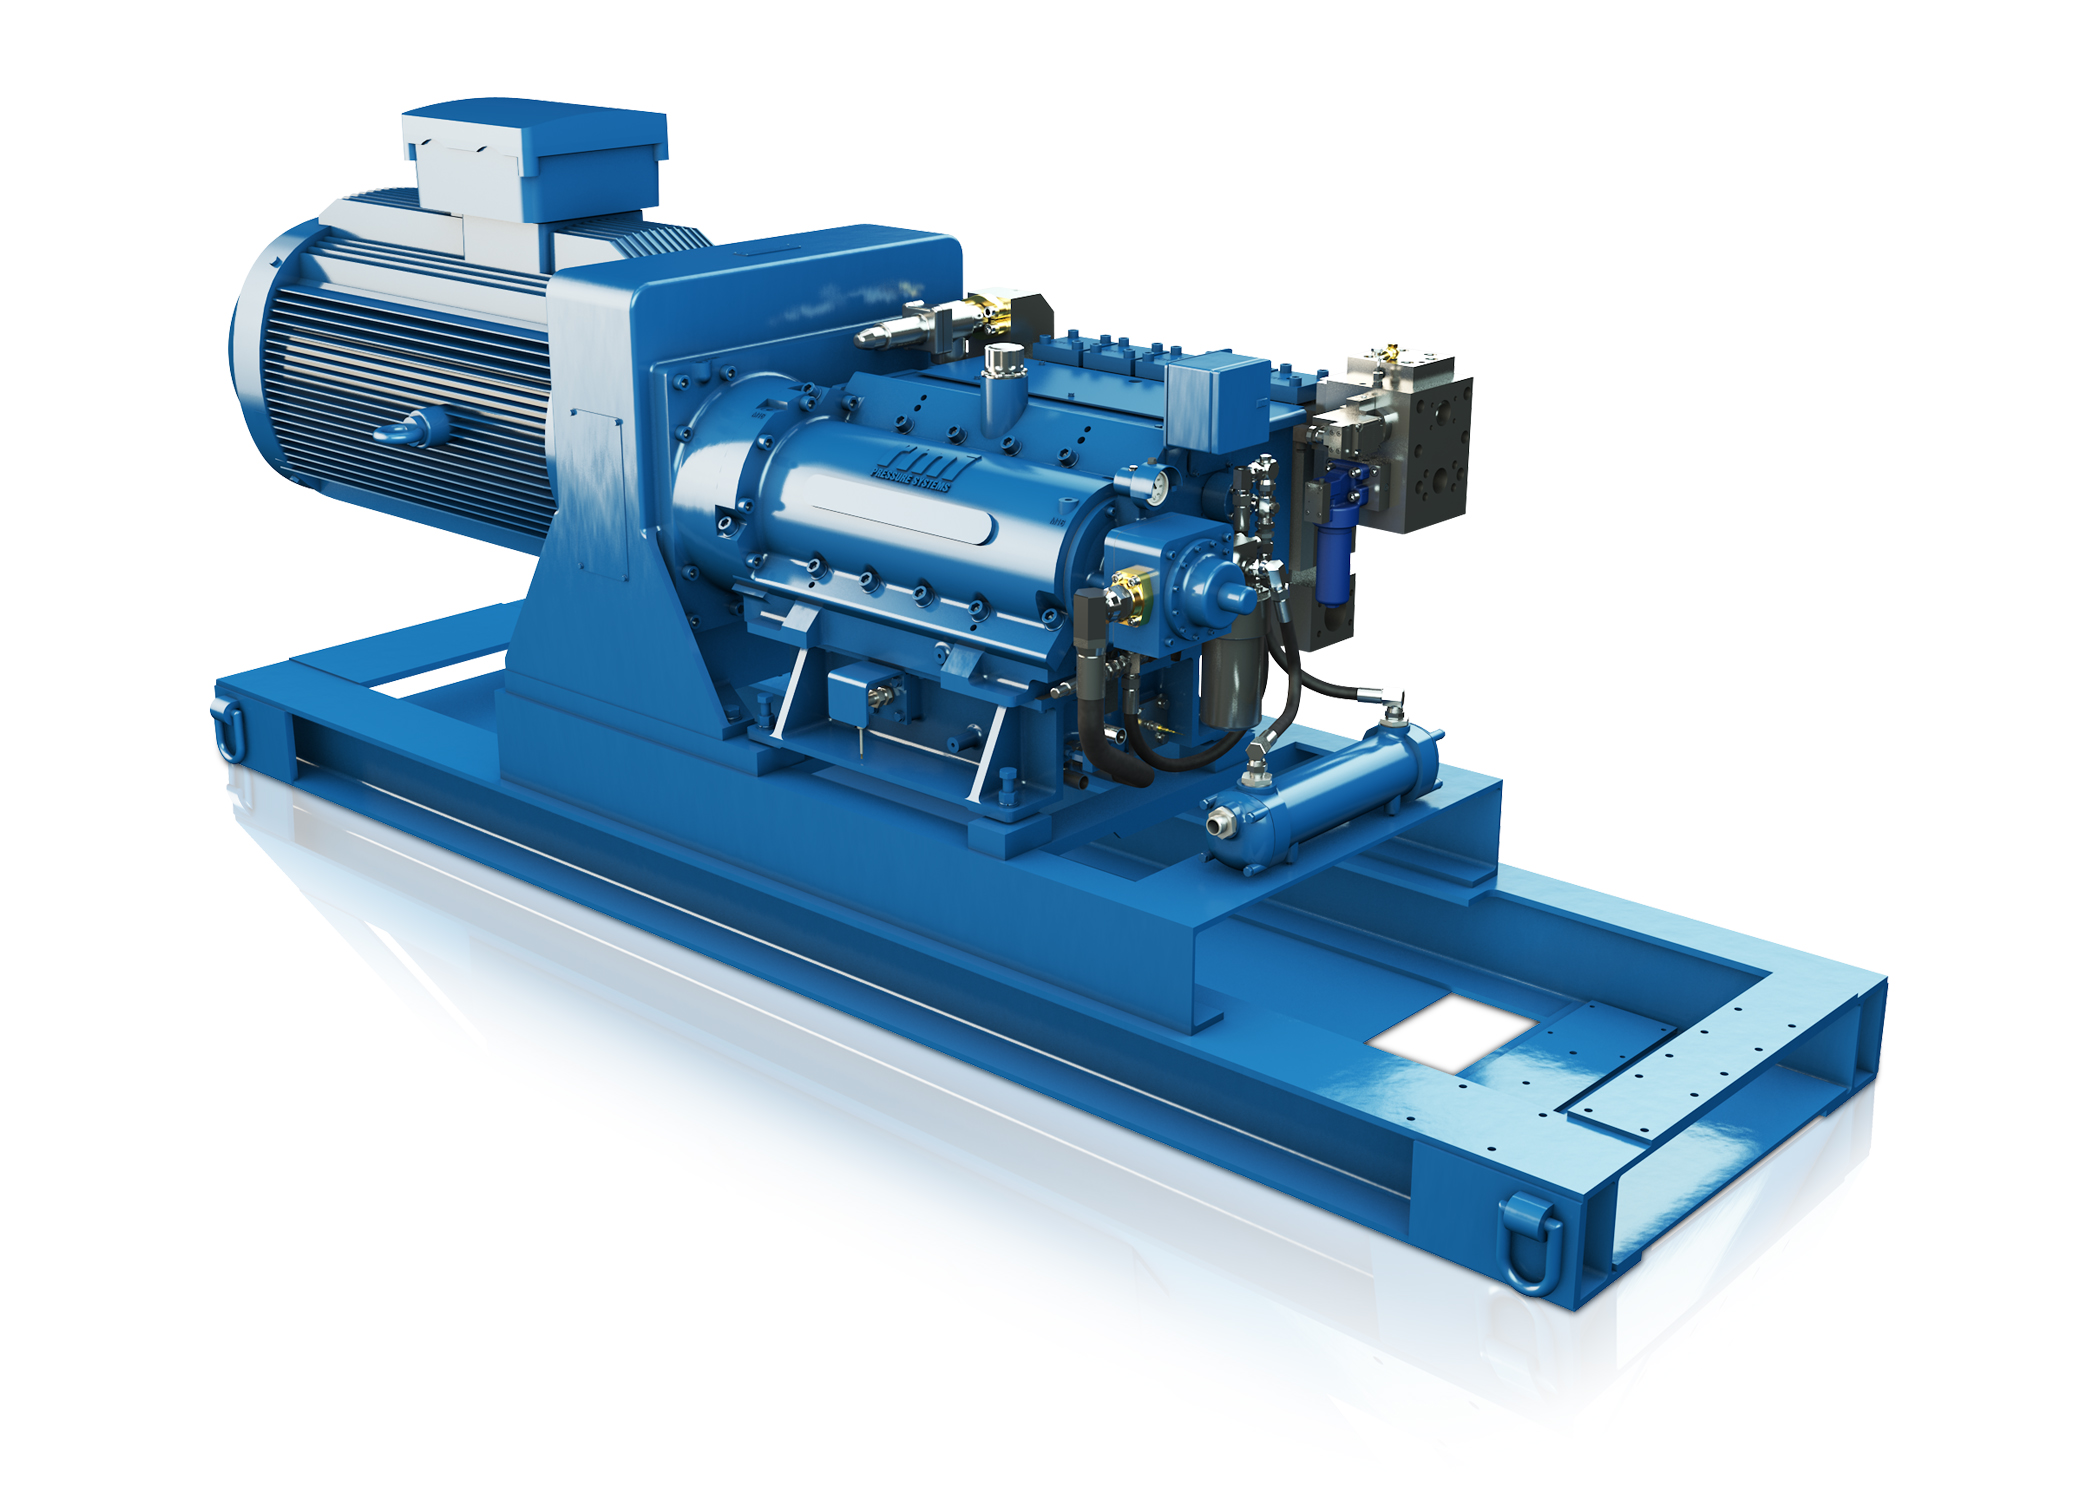 Reliability & Innovation - crucial in High Pressure Pump Design